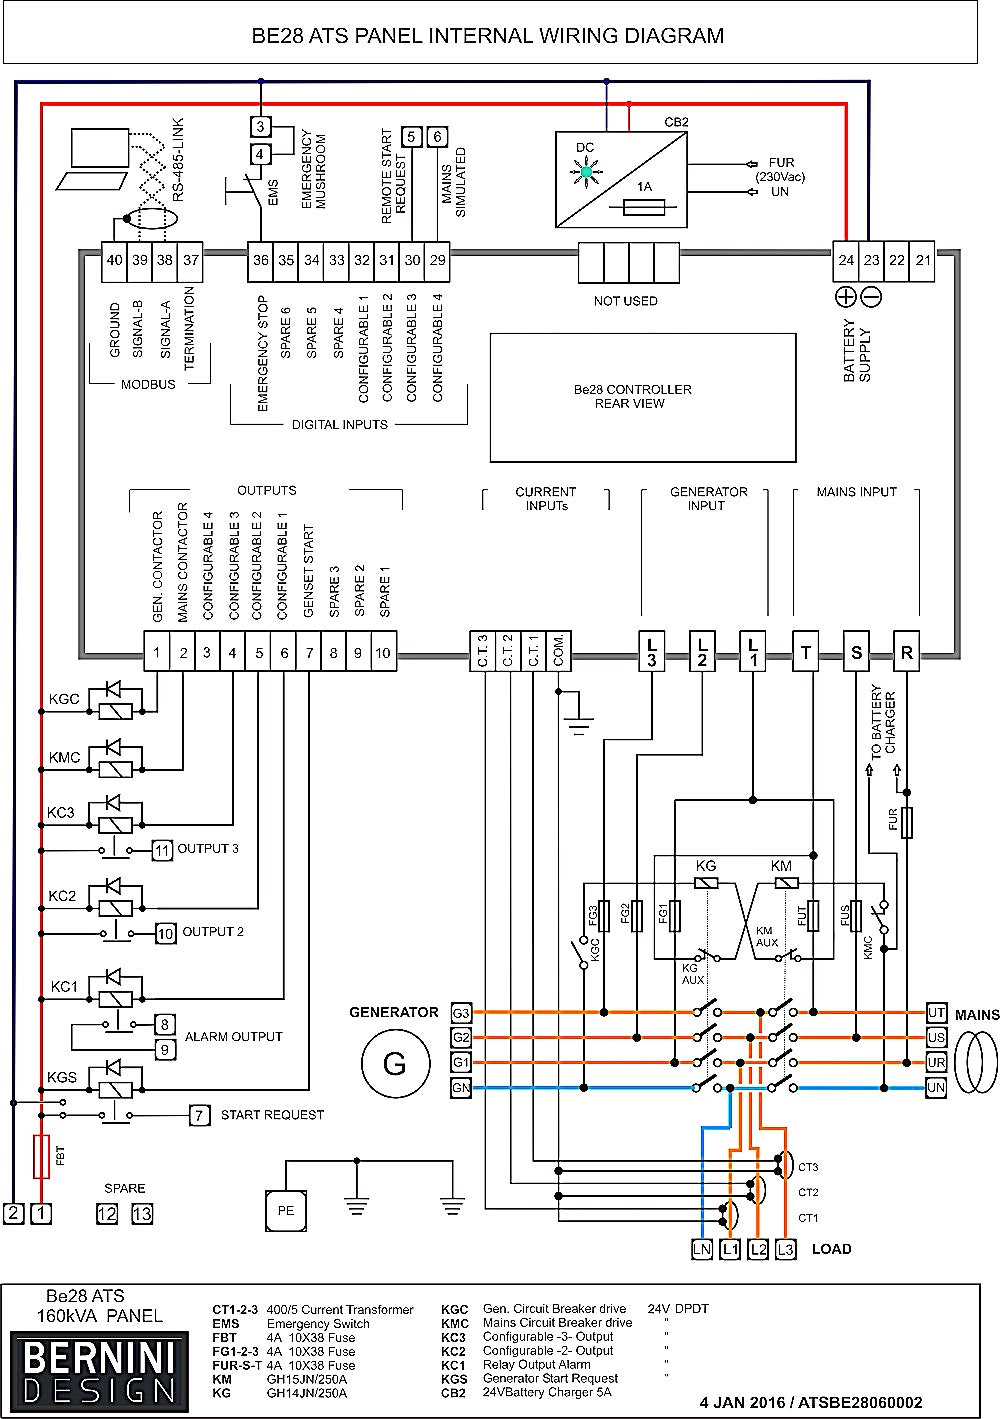 generac ats wiring diagram download wiring diagram sample rh faceitsalon com generac transfer switch control wiring diagram generac transfer switch wiring diagram